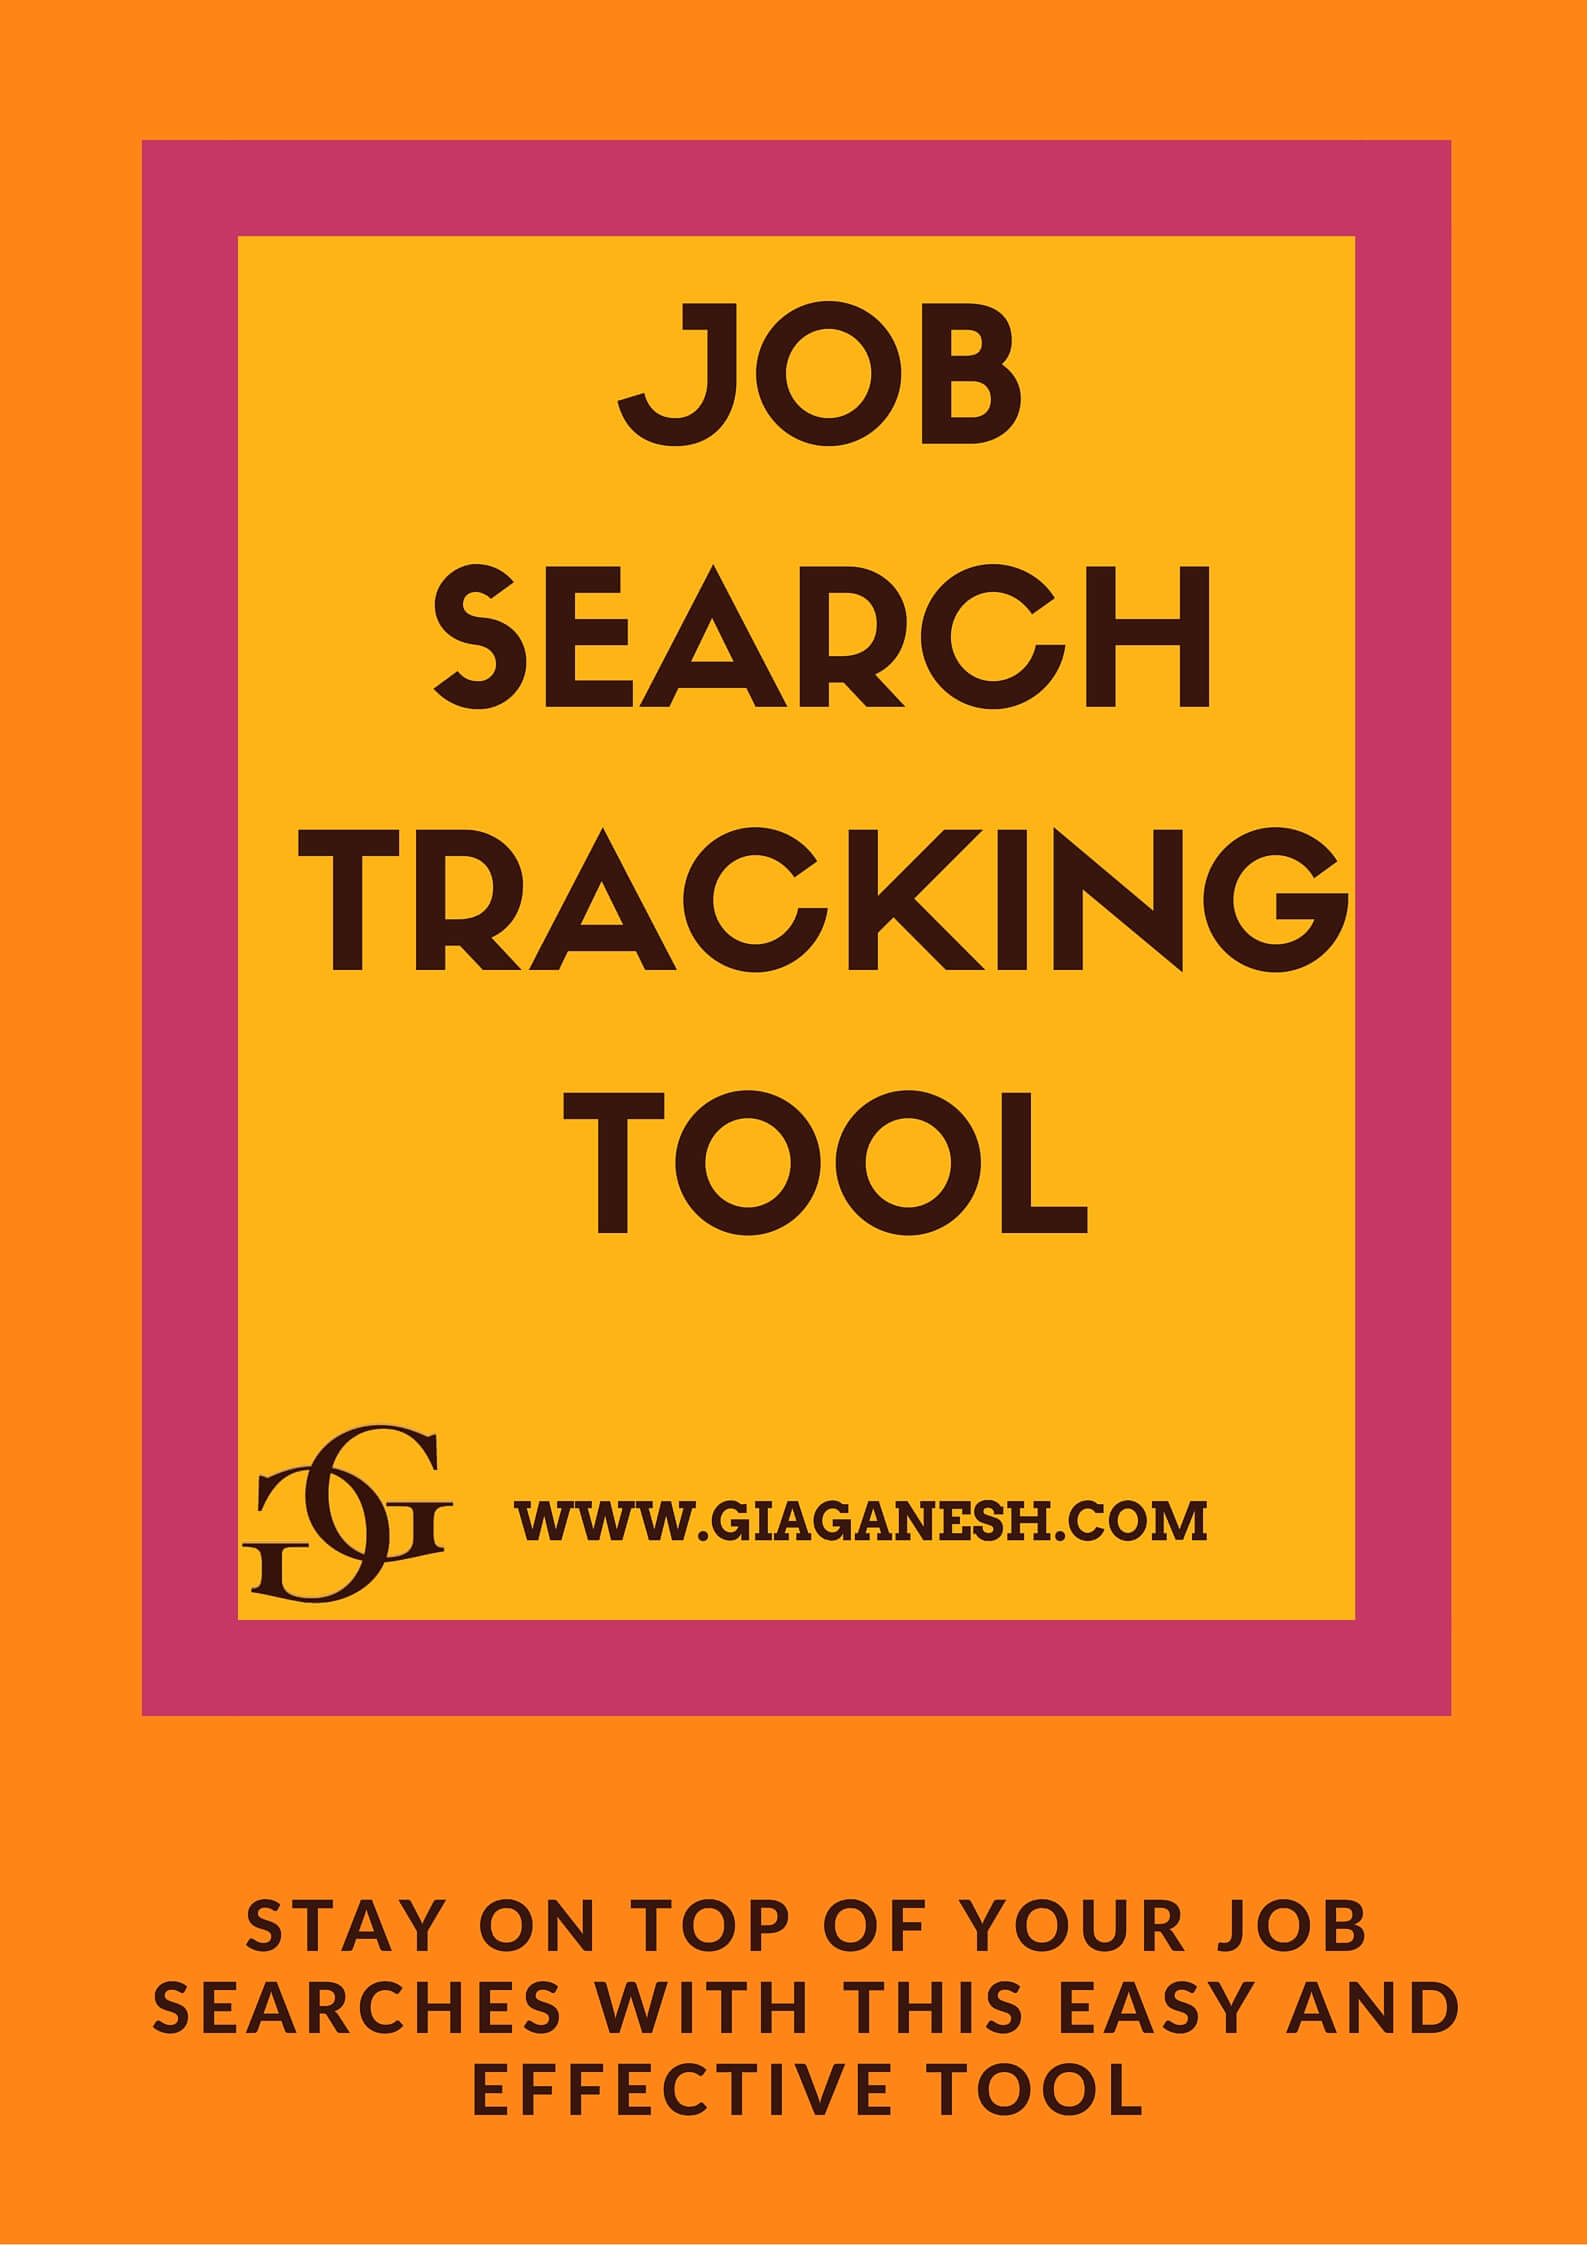 JOB SEARCH TRACKING TOOL